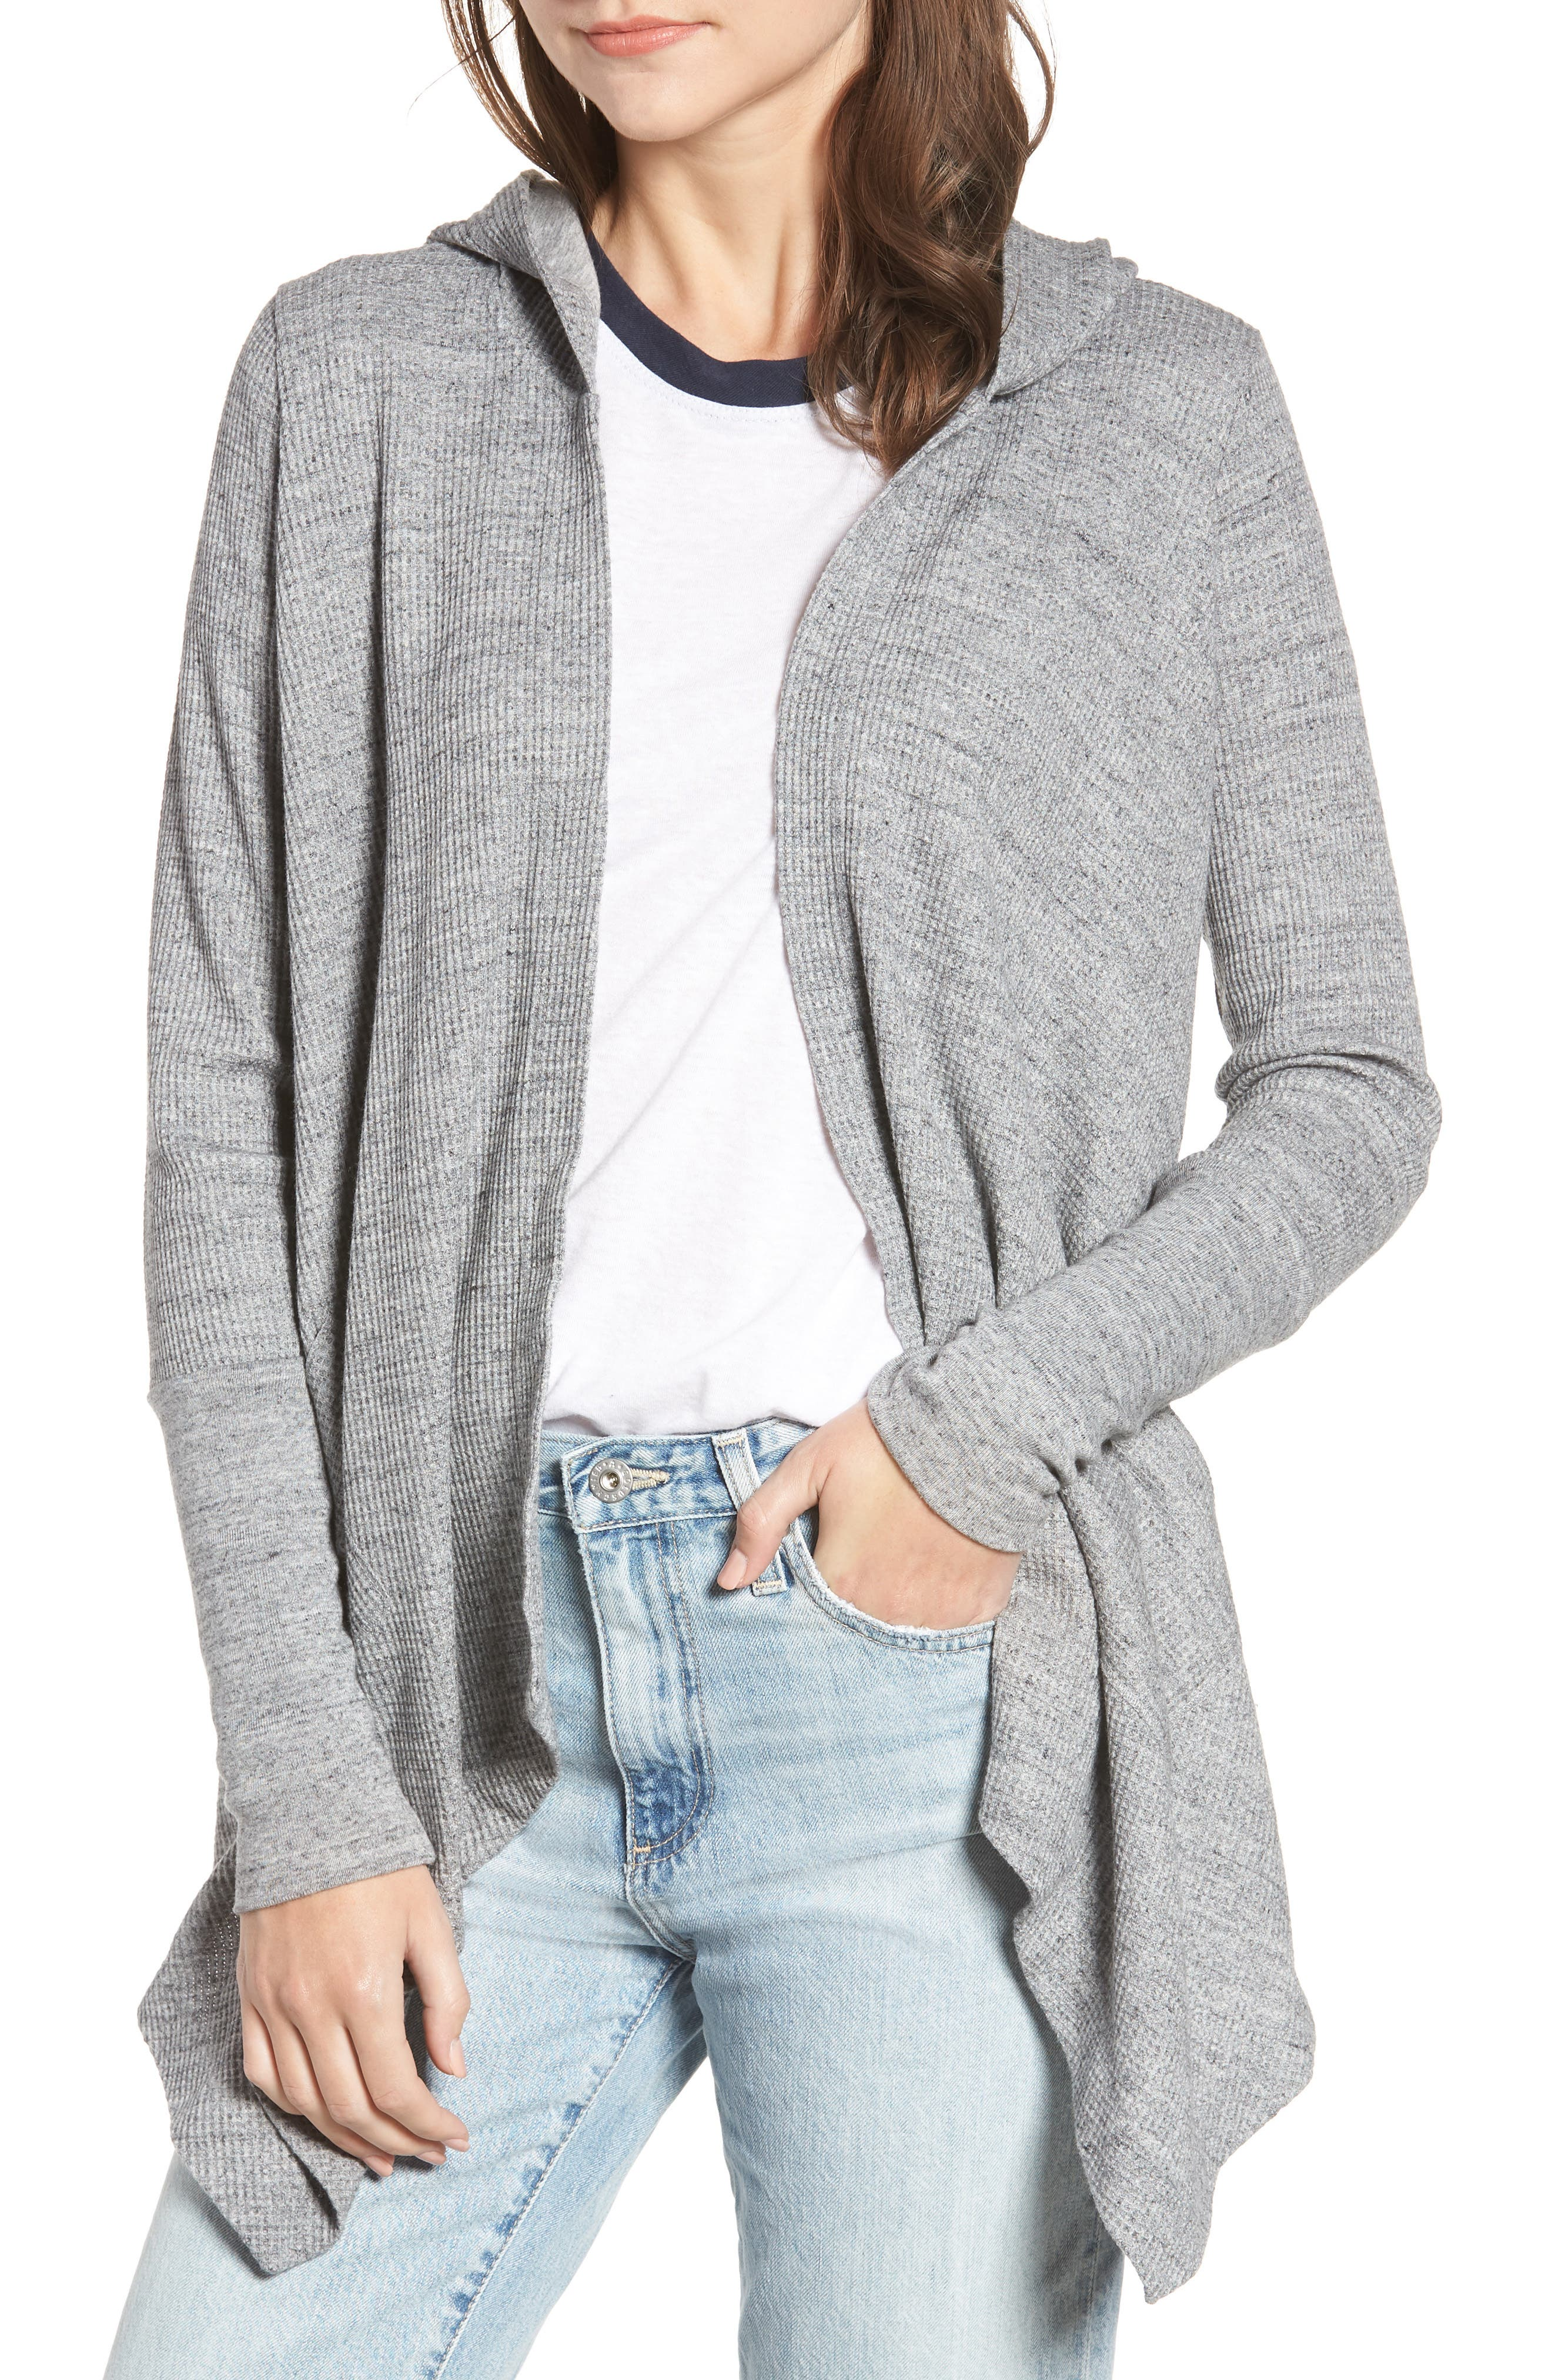 Thermal Hooded Cardigan,                             Main thumbnail 1, color,                             GRAVEL HEATHER GREY